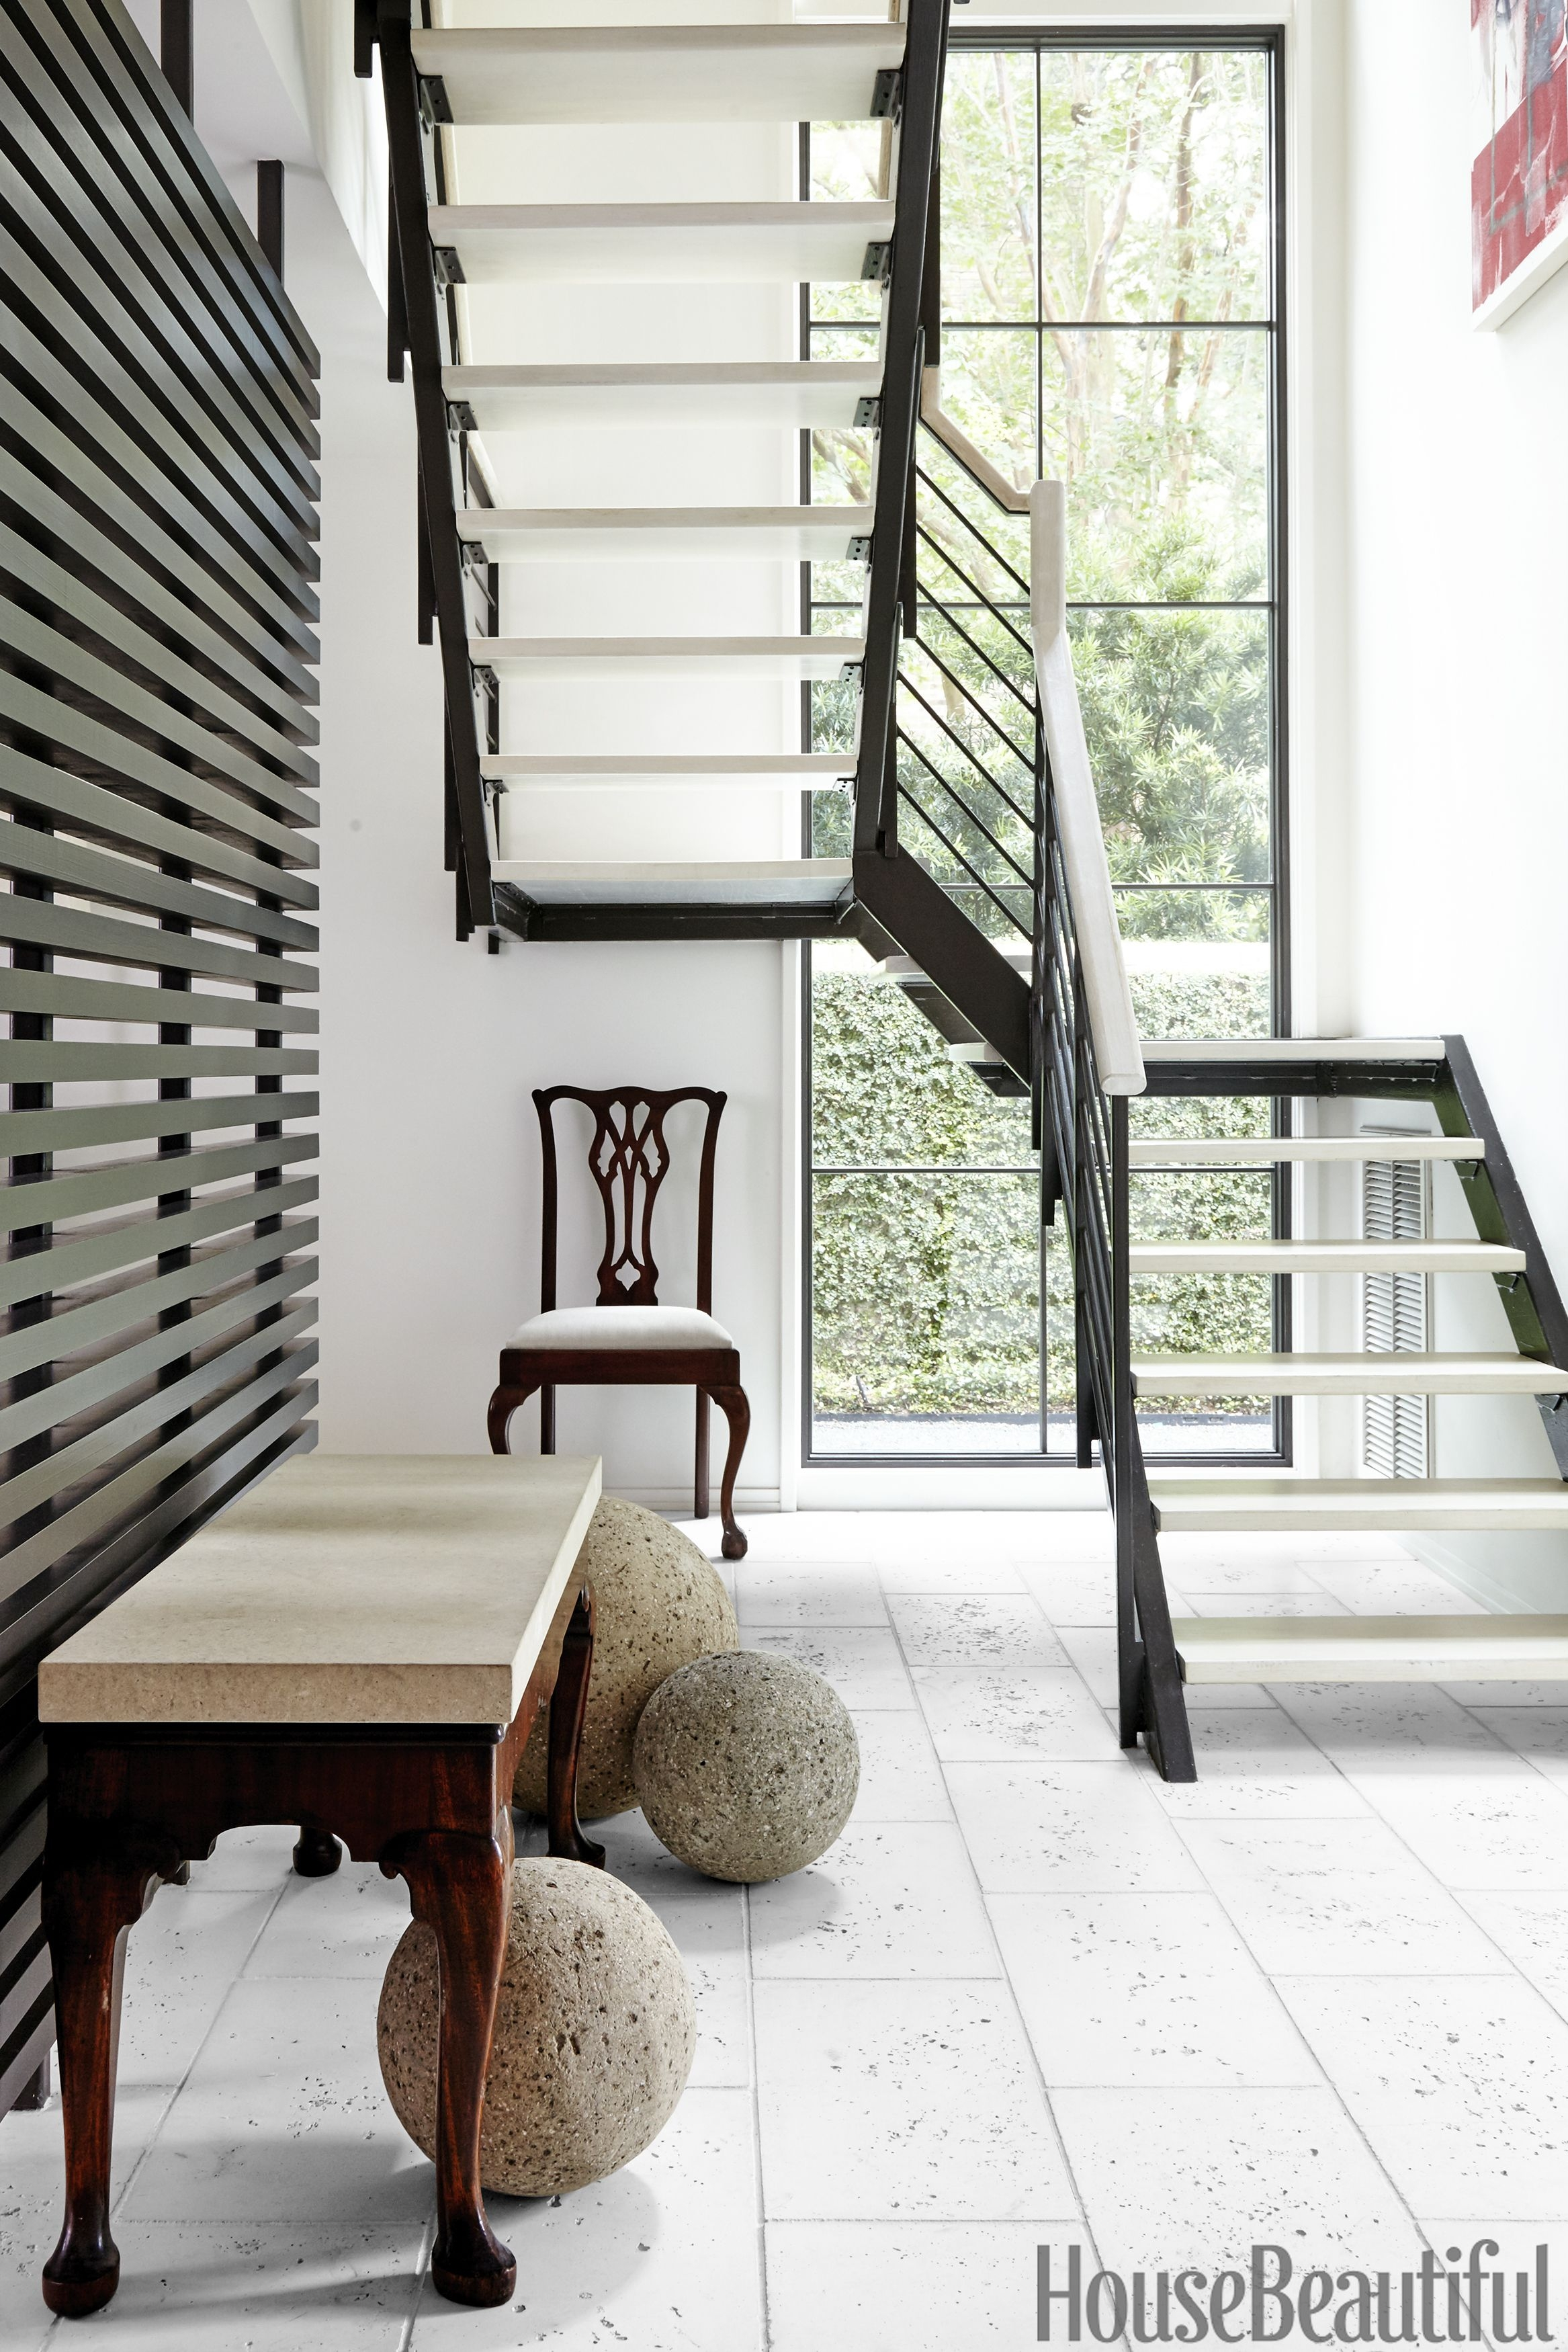 25 Unique Stair Designs Beautiful Stair Ideas For Your House | Home Entrance Steps Design | Exterior | Sophisticated | Angled | Bungalow Entrance | Concrete